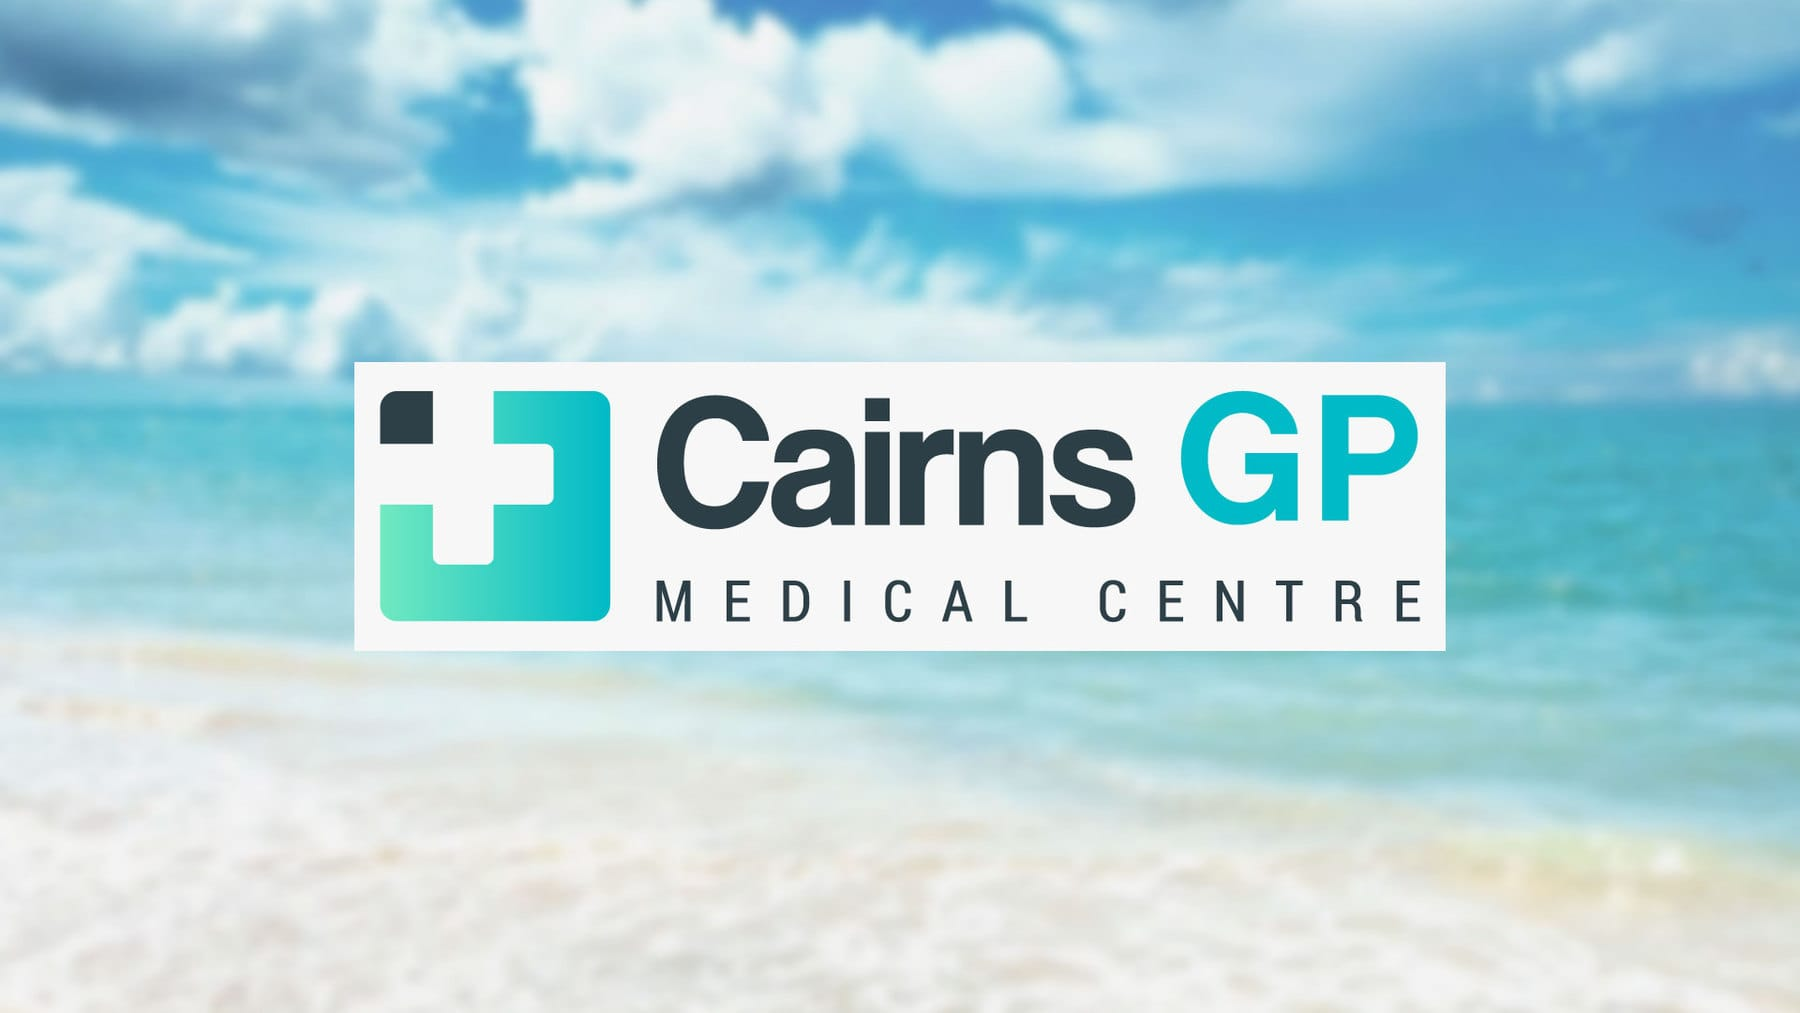 Welcome to Cairns GP Medical Centre